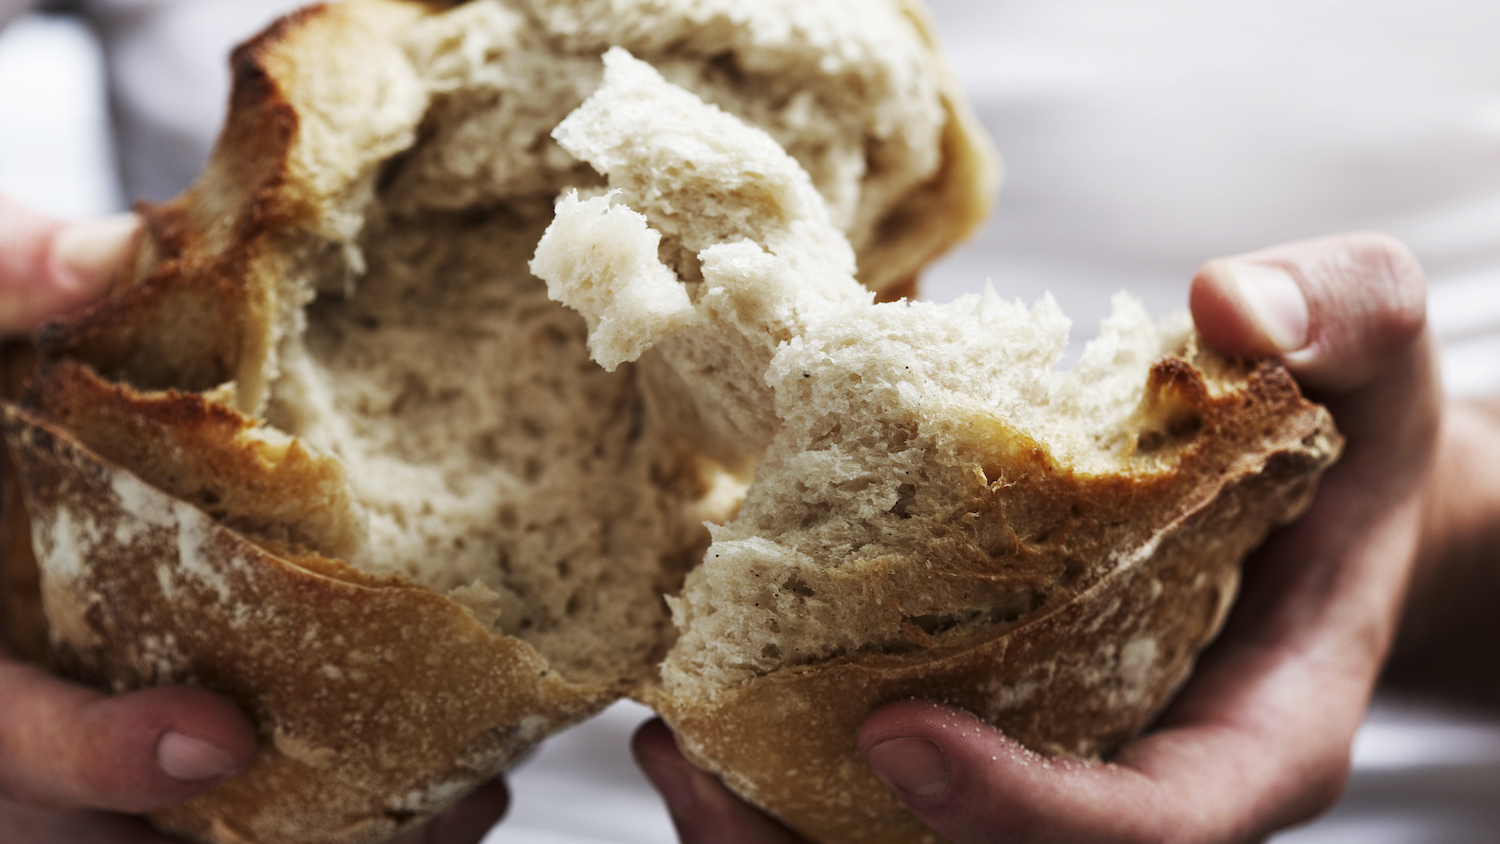 Here's Why Bread, Beer, and Pasta May Soon Be Getting More Expensive